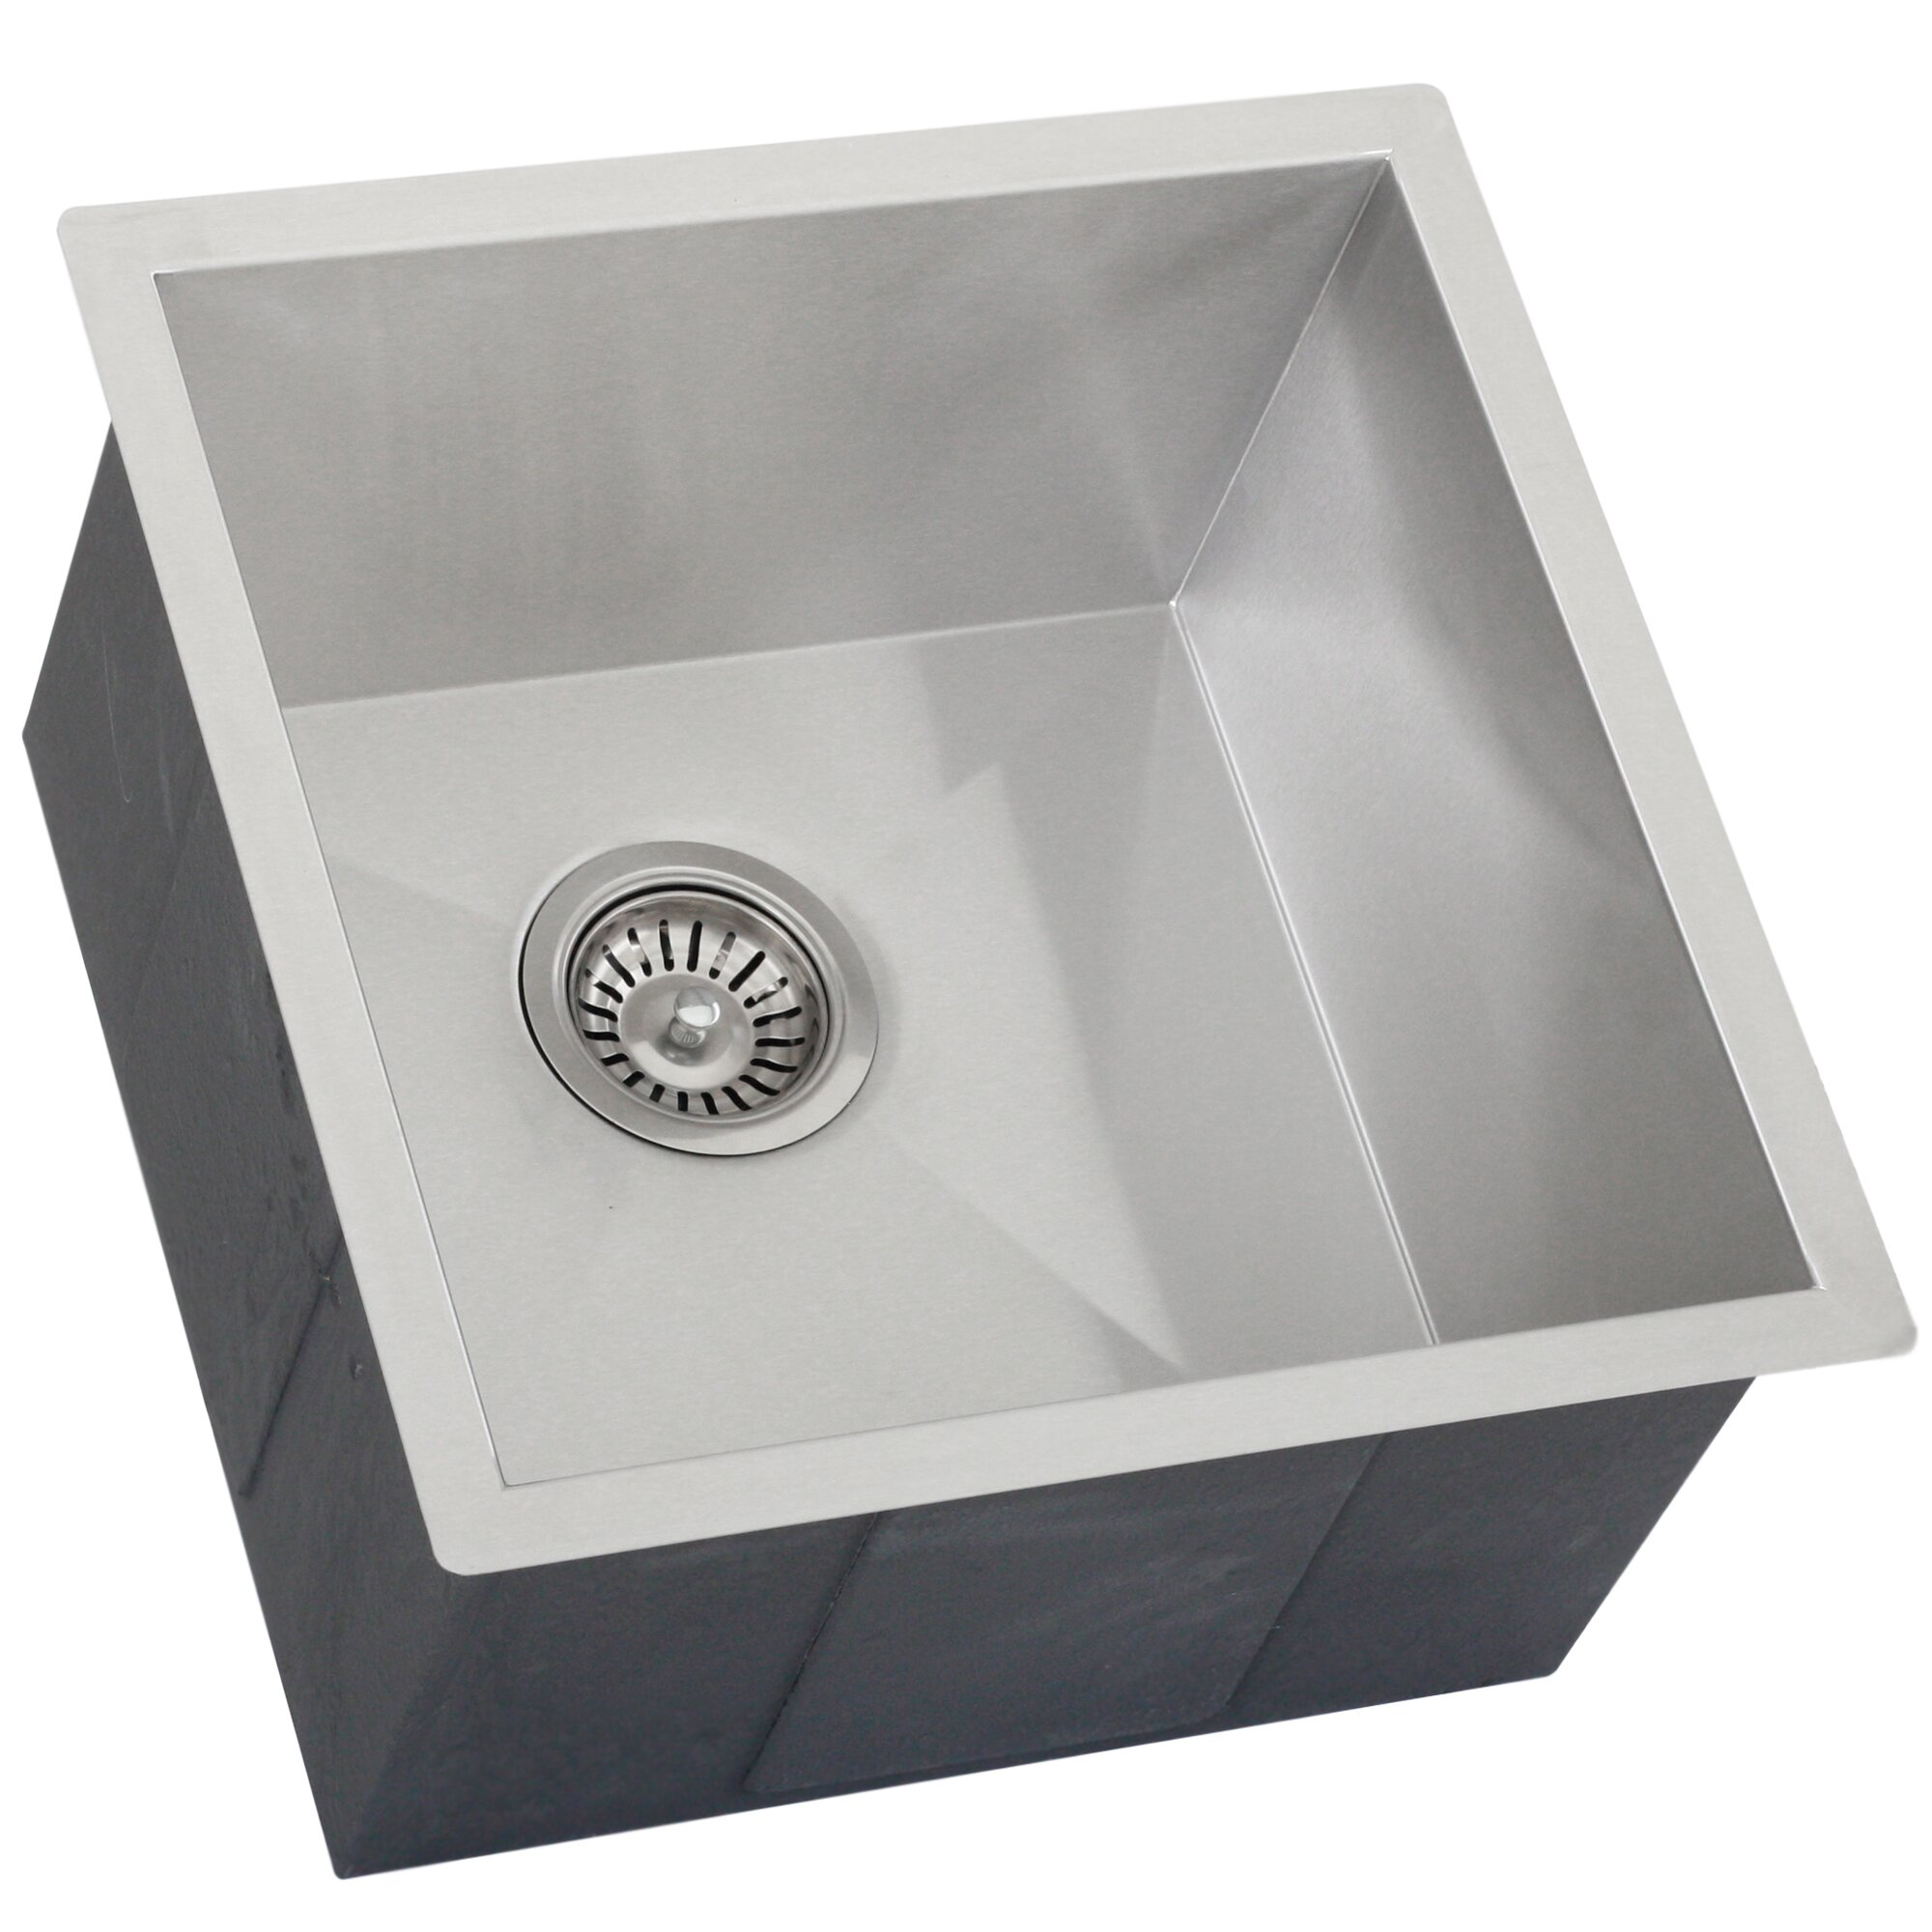 ... Steel Single Bowl Square Undermount Kitchen Bar Sink by Ticor Sinks